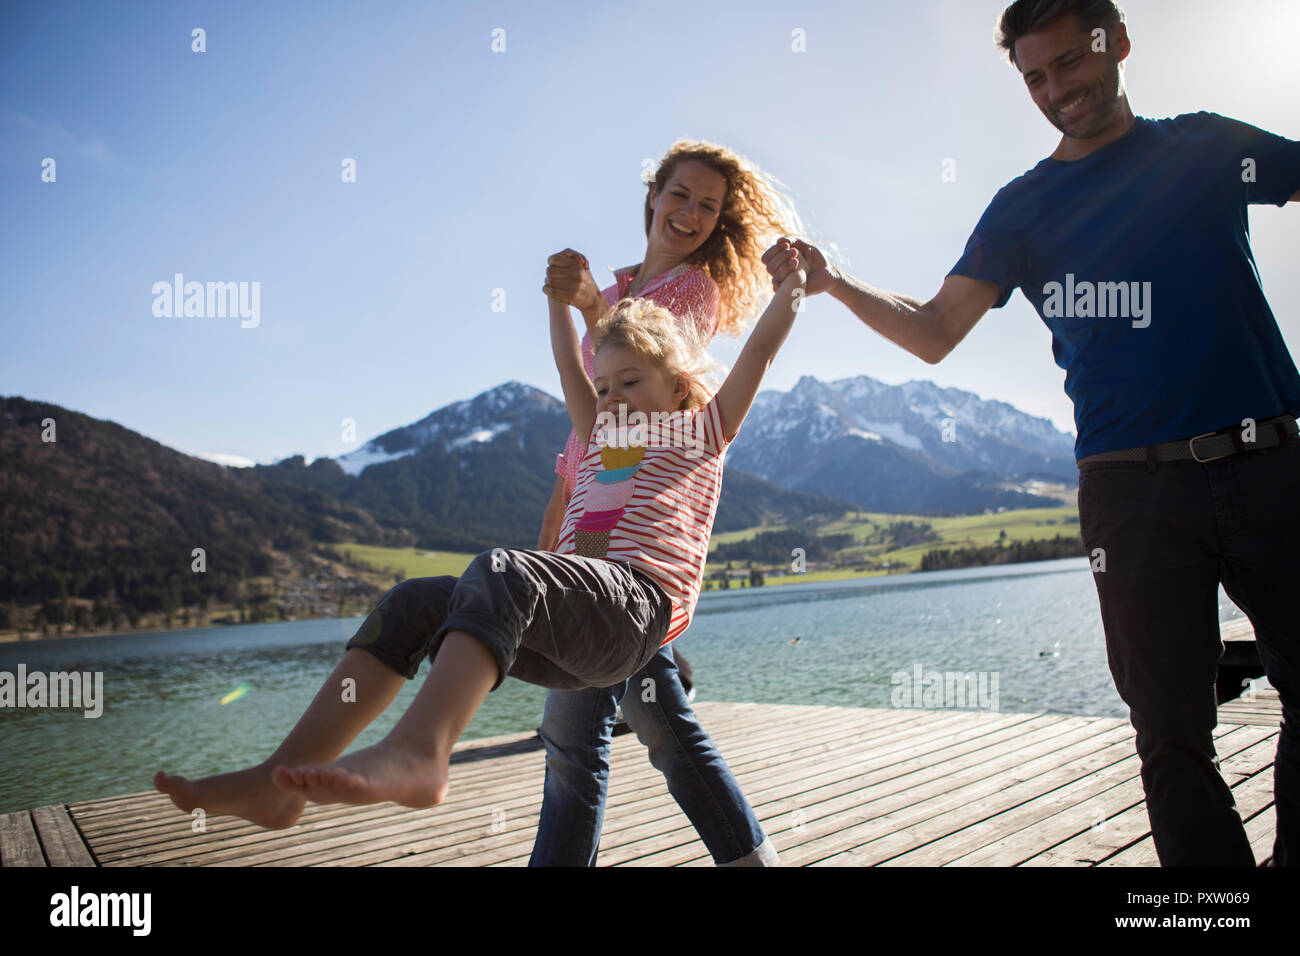 Austria, Tyrol, Walchsee, happy parents swinging their daughter at the lake - Stock Image